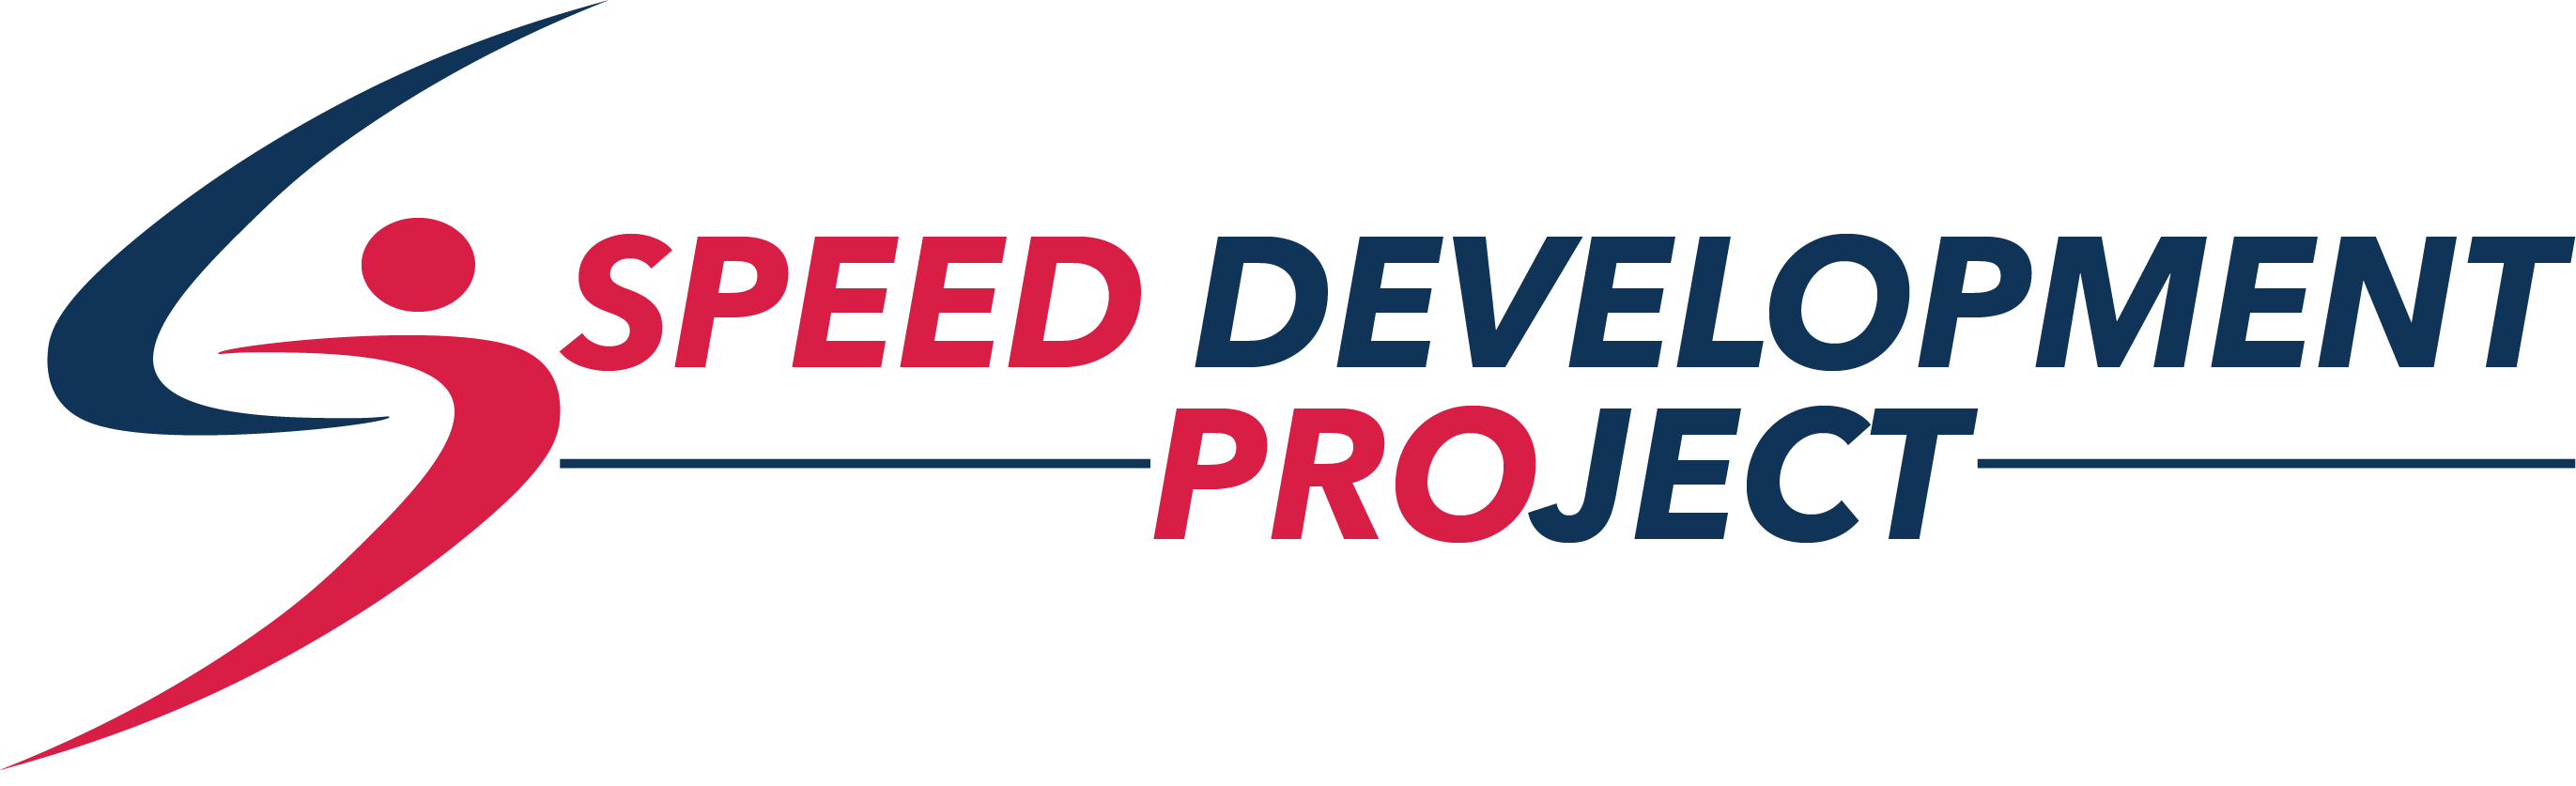 Speed Development Project